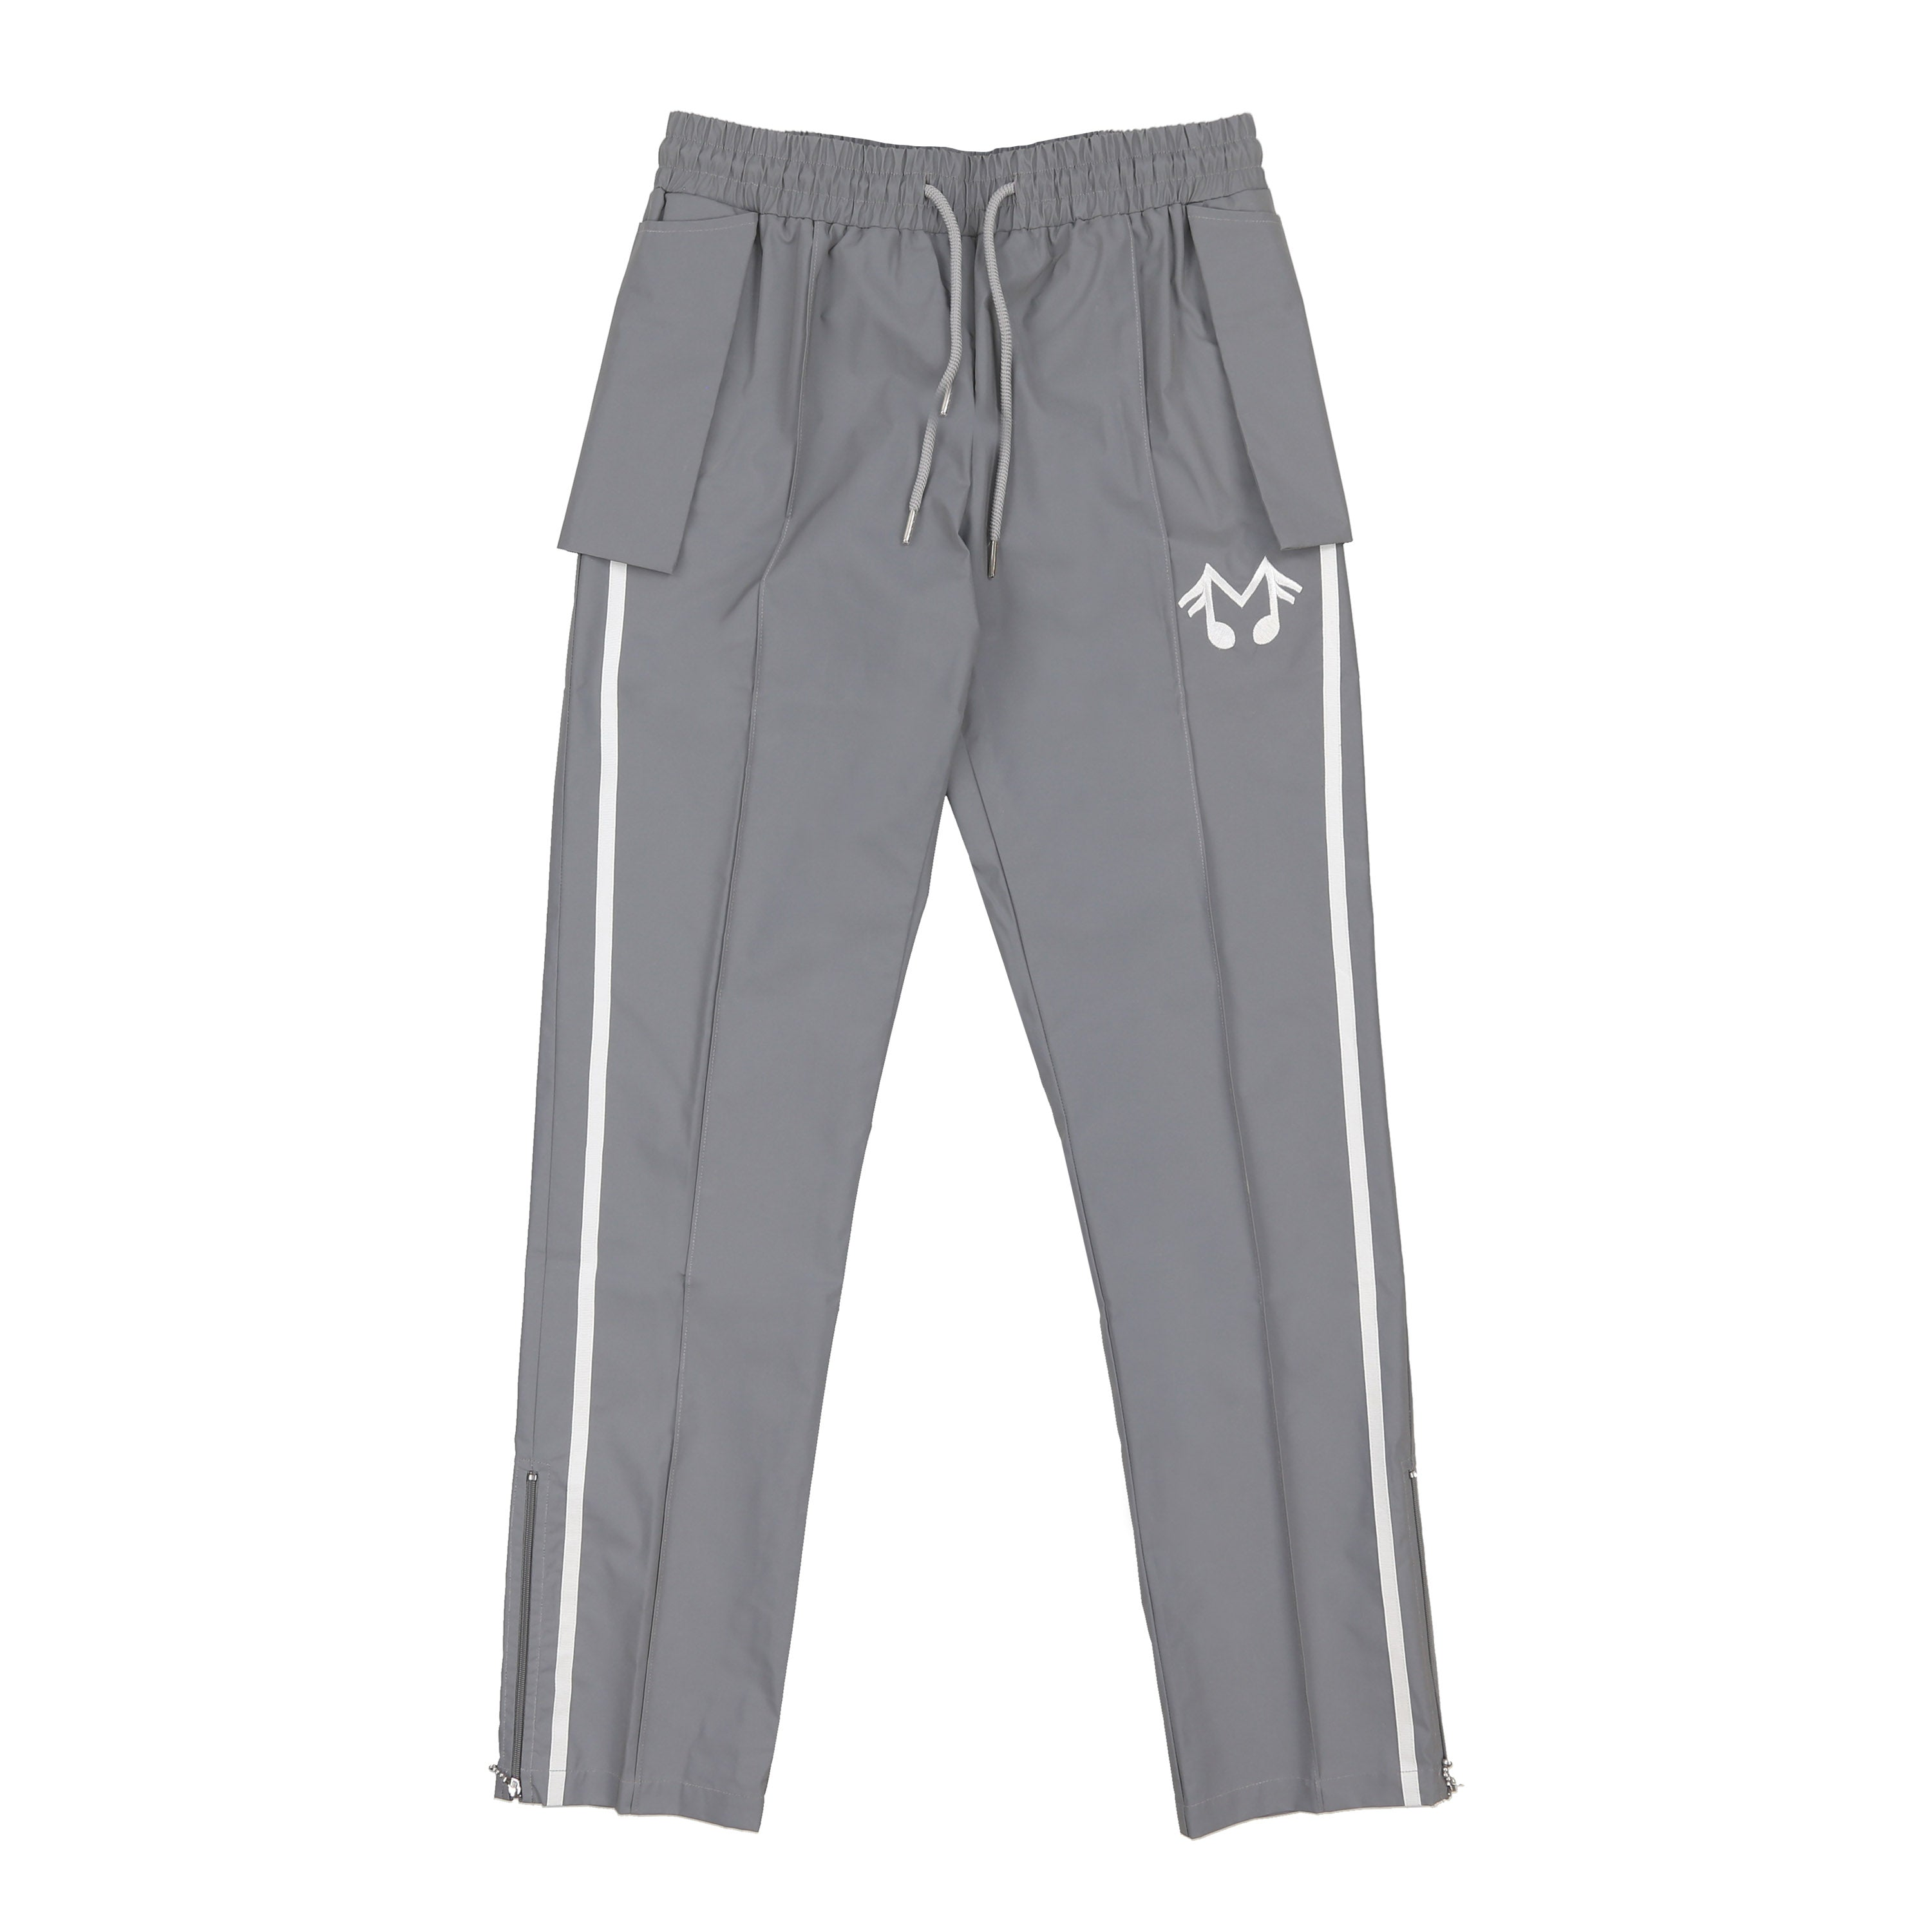 MUSIC NOTE TRACK PANT (REFLECTIVE)